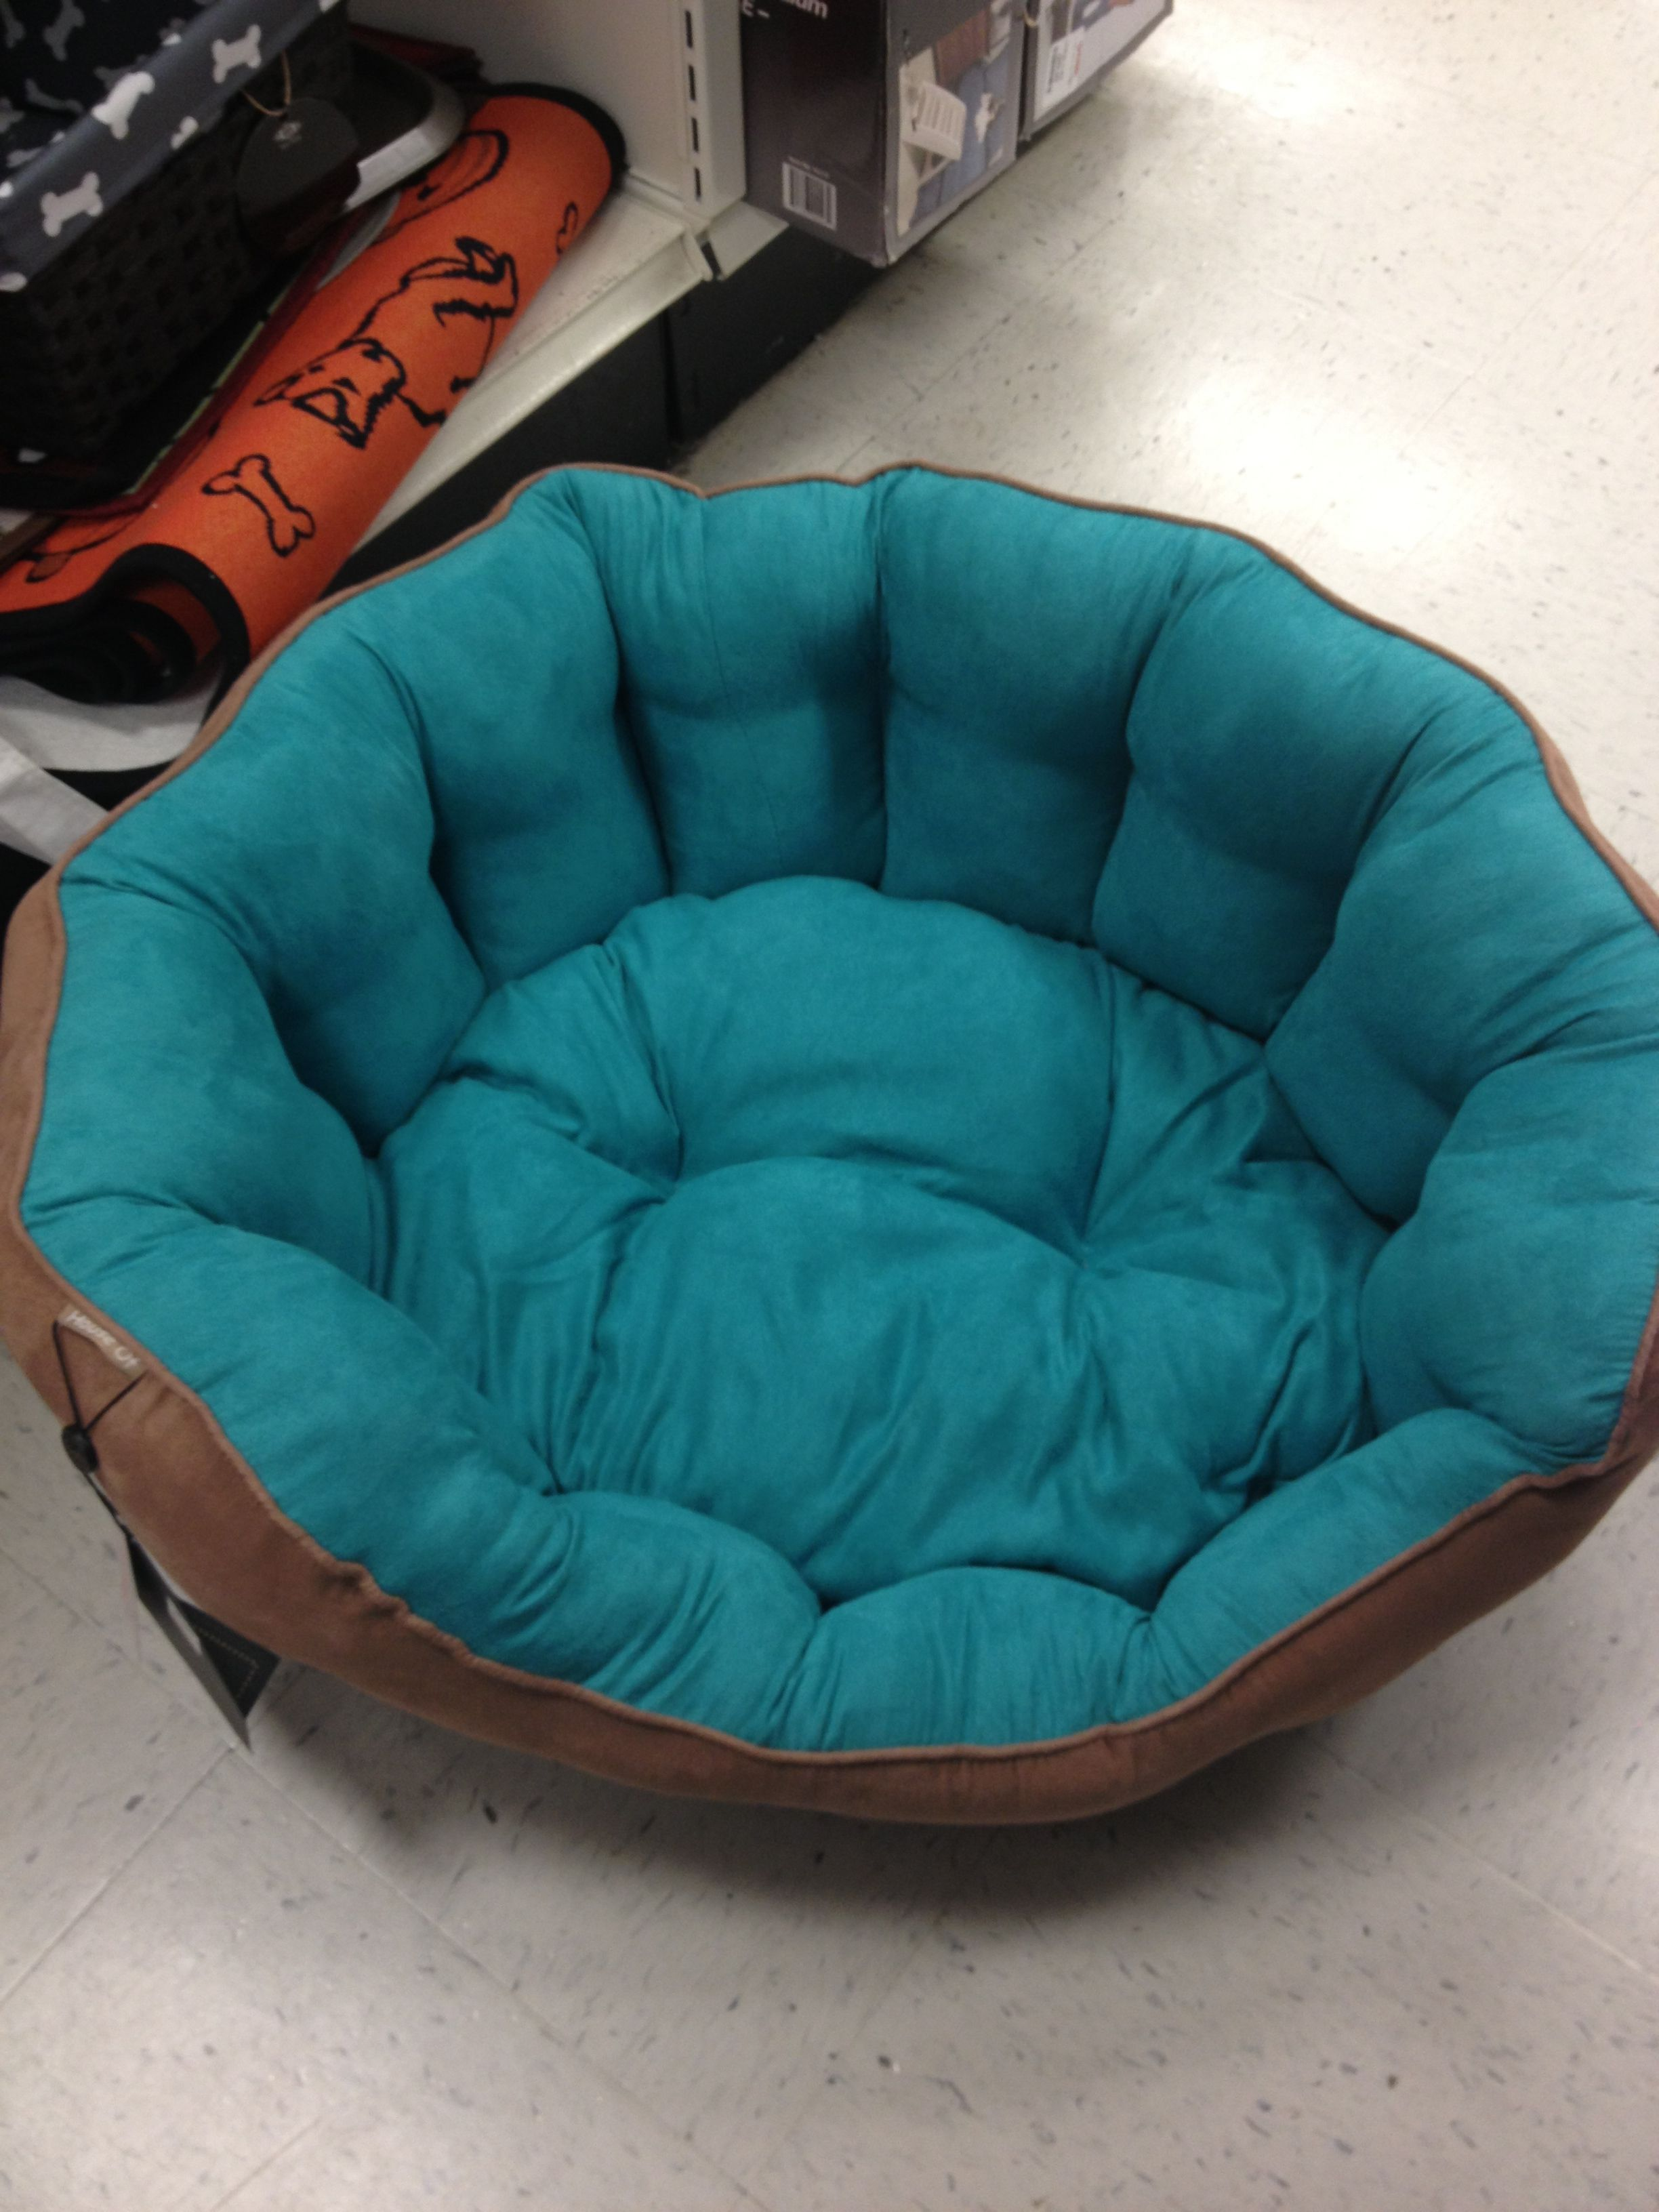 Dog bed tj maxx Dog bed, Dog furniture, Dogs, puppies